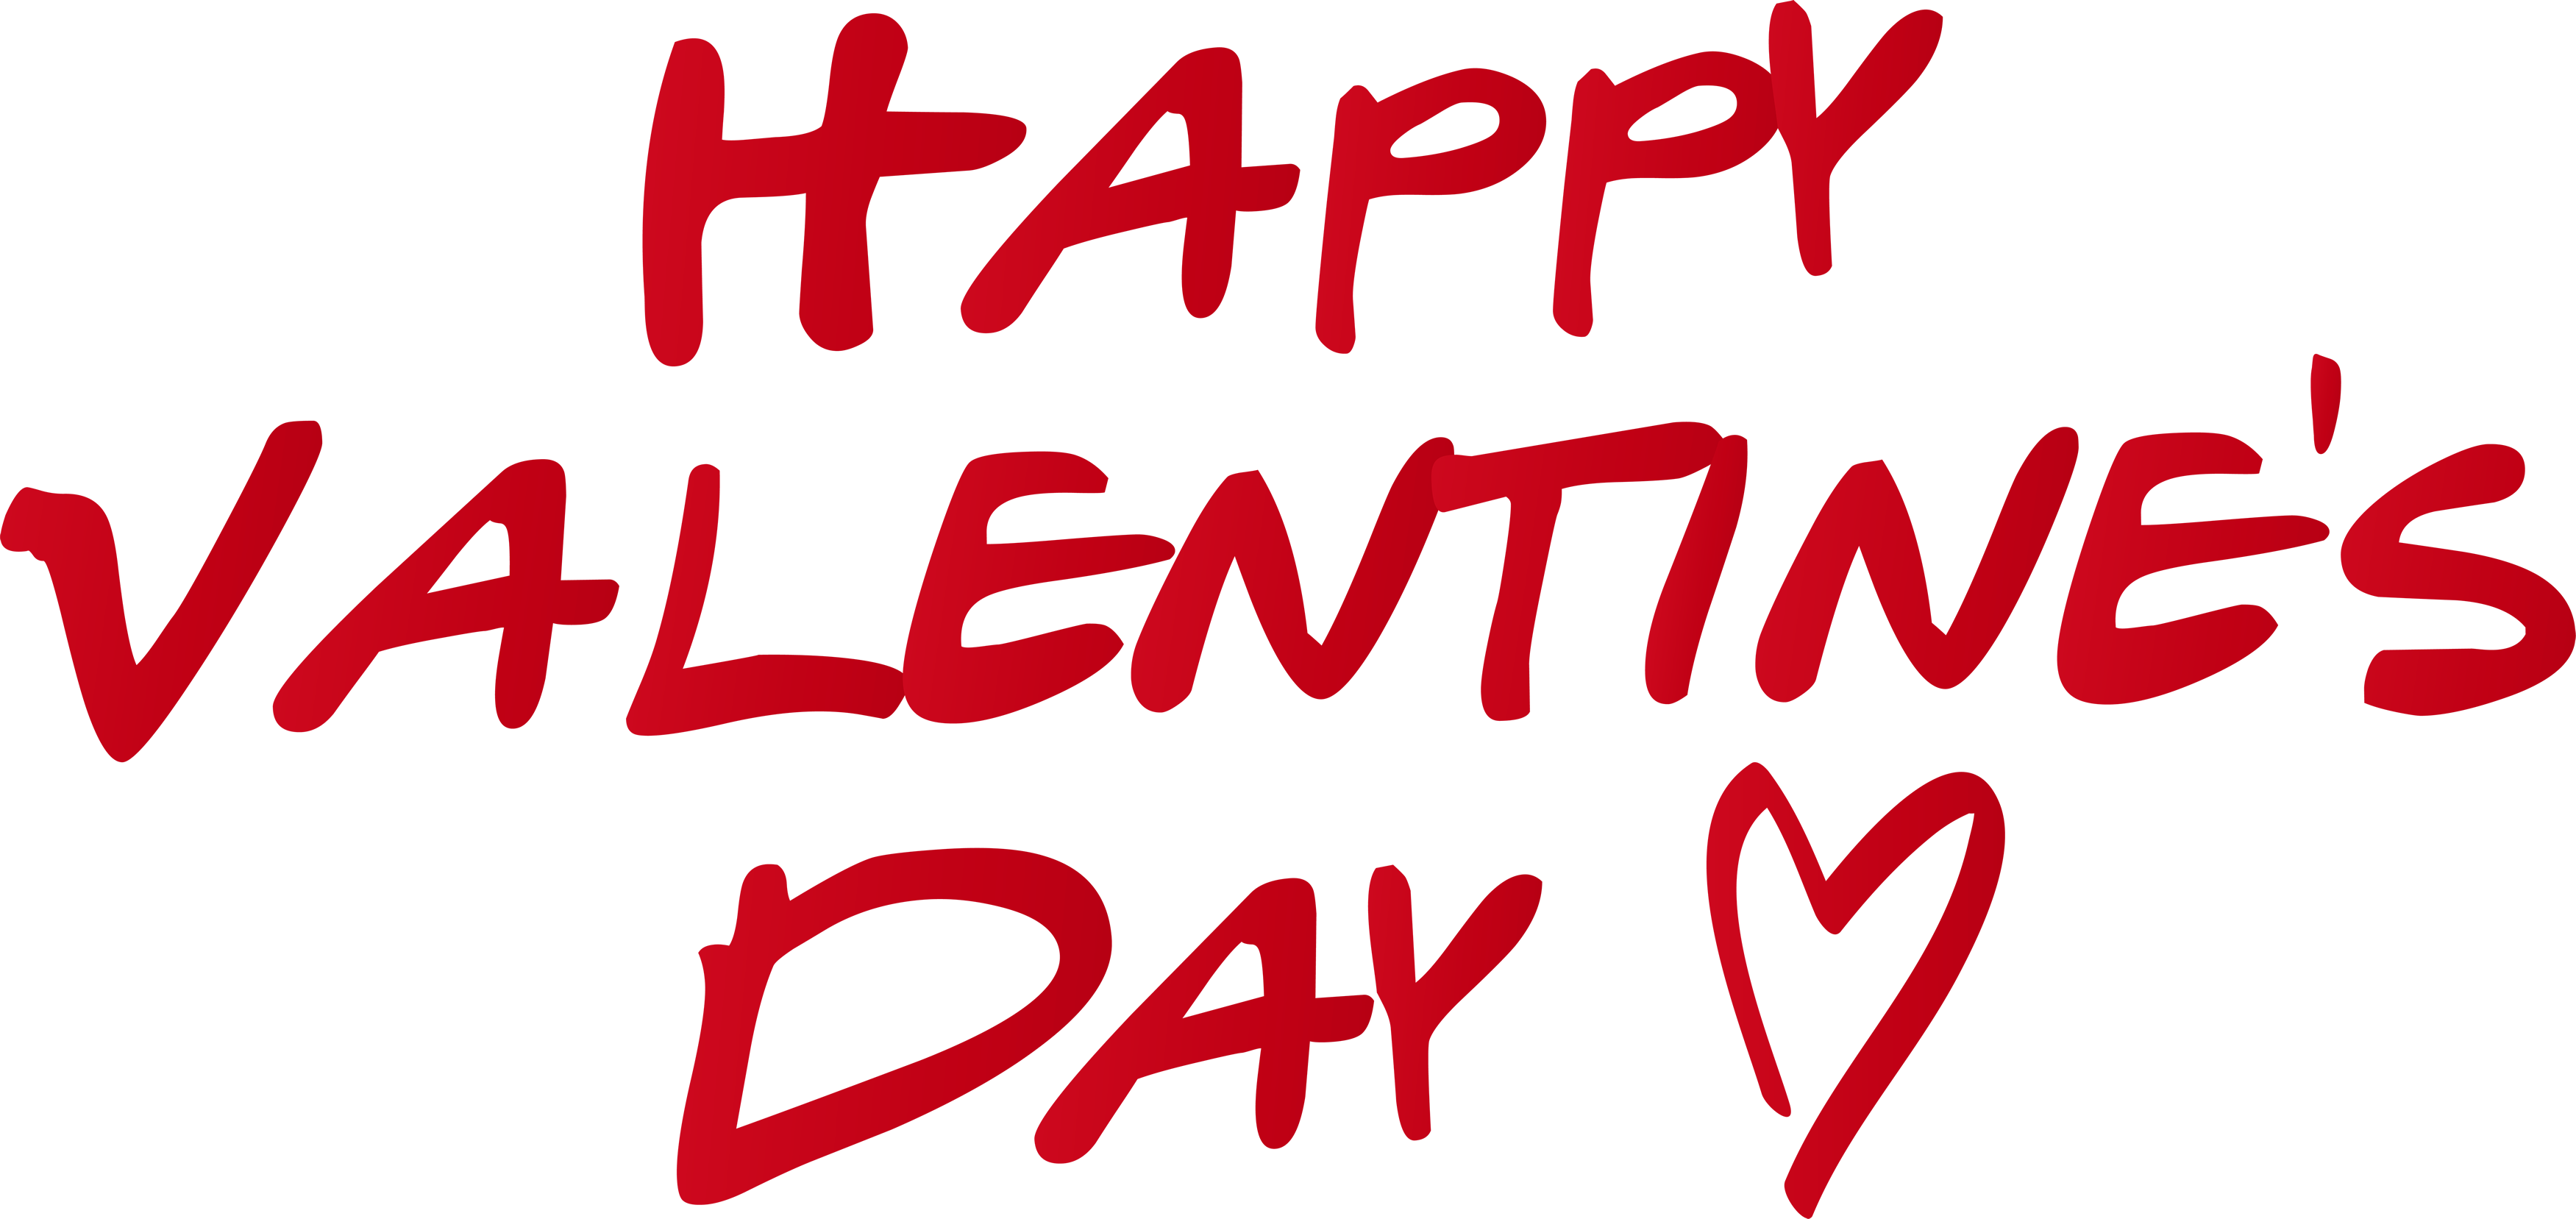 Valentines Day Free Download PNG Image